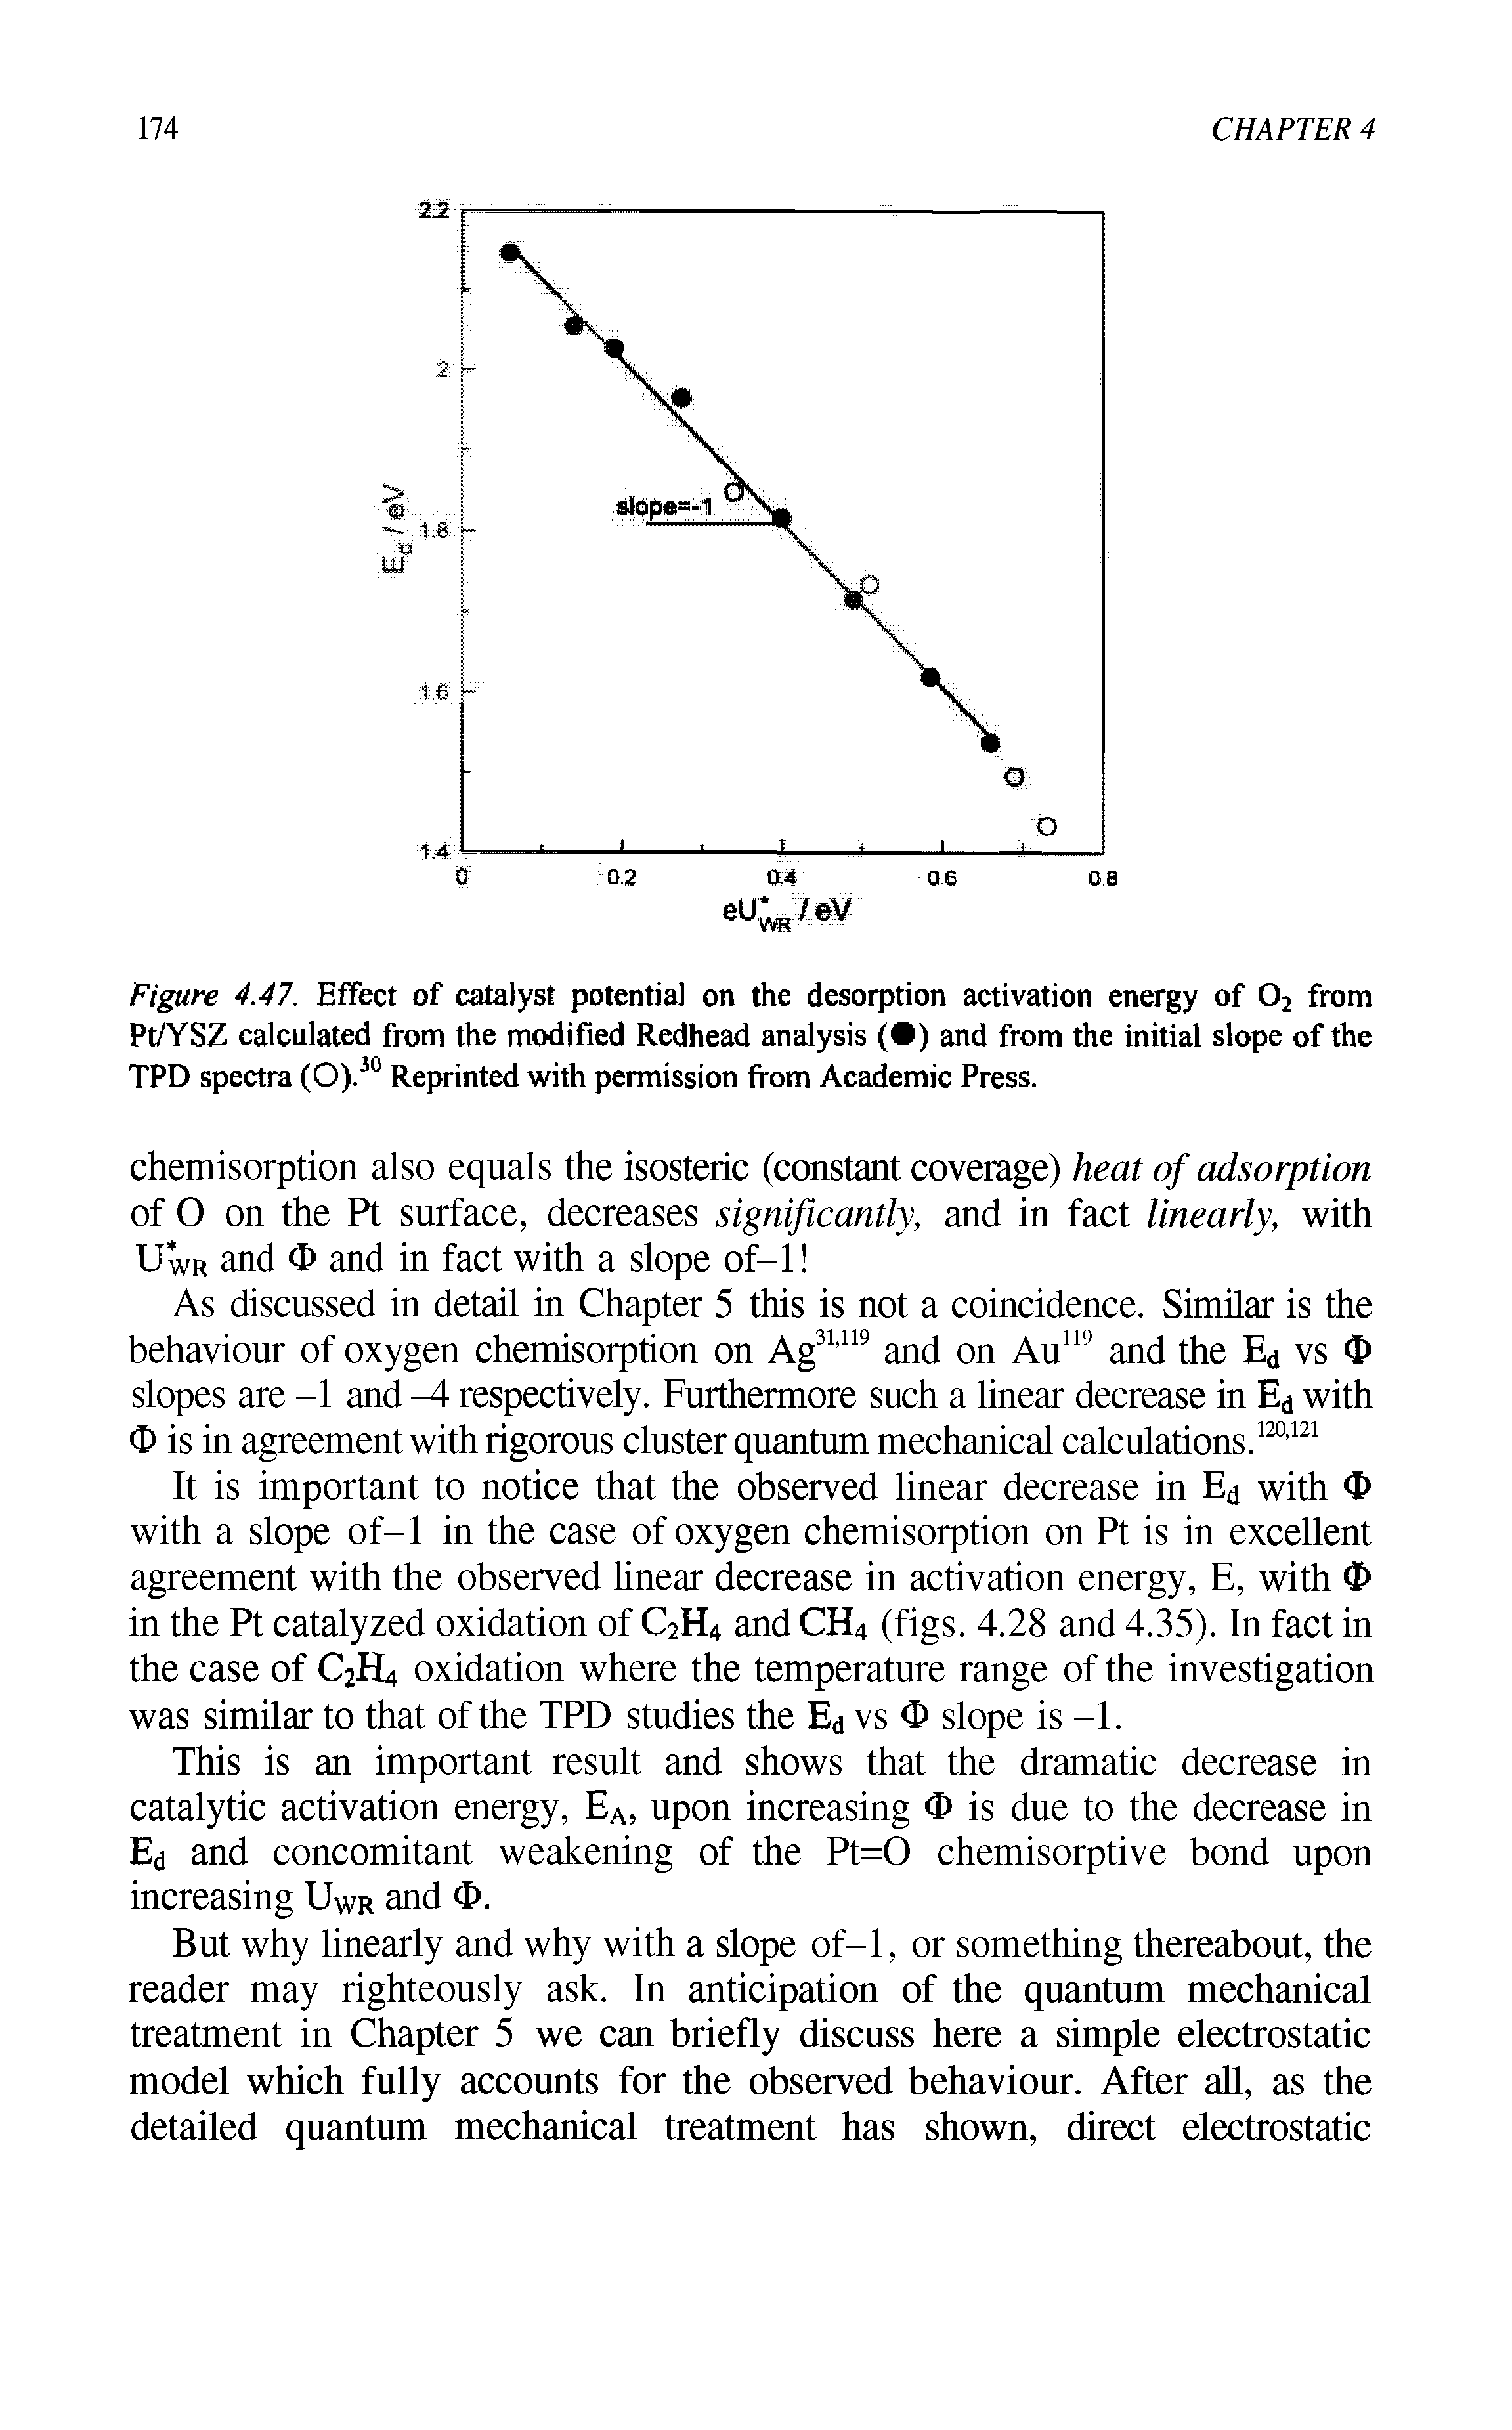 "Figure 4.47. Effect of catalyst potential on the <a href=""/info/desorption_activation_energy_for"">desorption activation energy</a> of 02 from Pt/YSZ <a href=""/info/ka_calculation_of_from_pka"">calculated from</a> the modified <a href=""/info/redhead_analysis"">Redhead analysis</a> ( ) and from the <a href=""/info/initial_slopes"">initial slope</a> of the TPD spectra (O).30 Reprinted with permission from Academic Press."